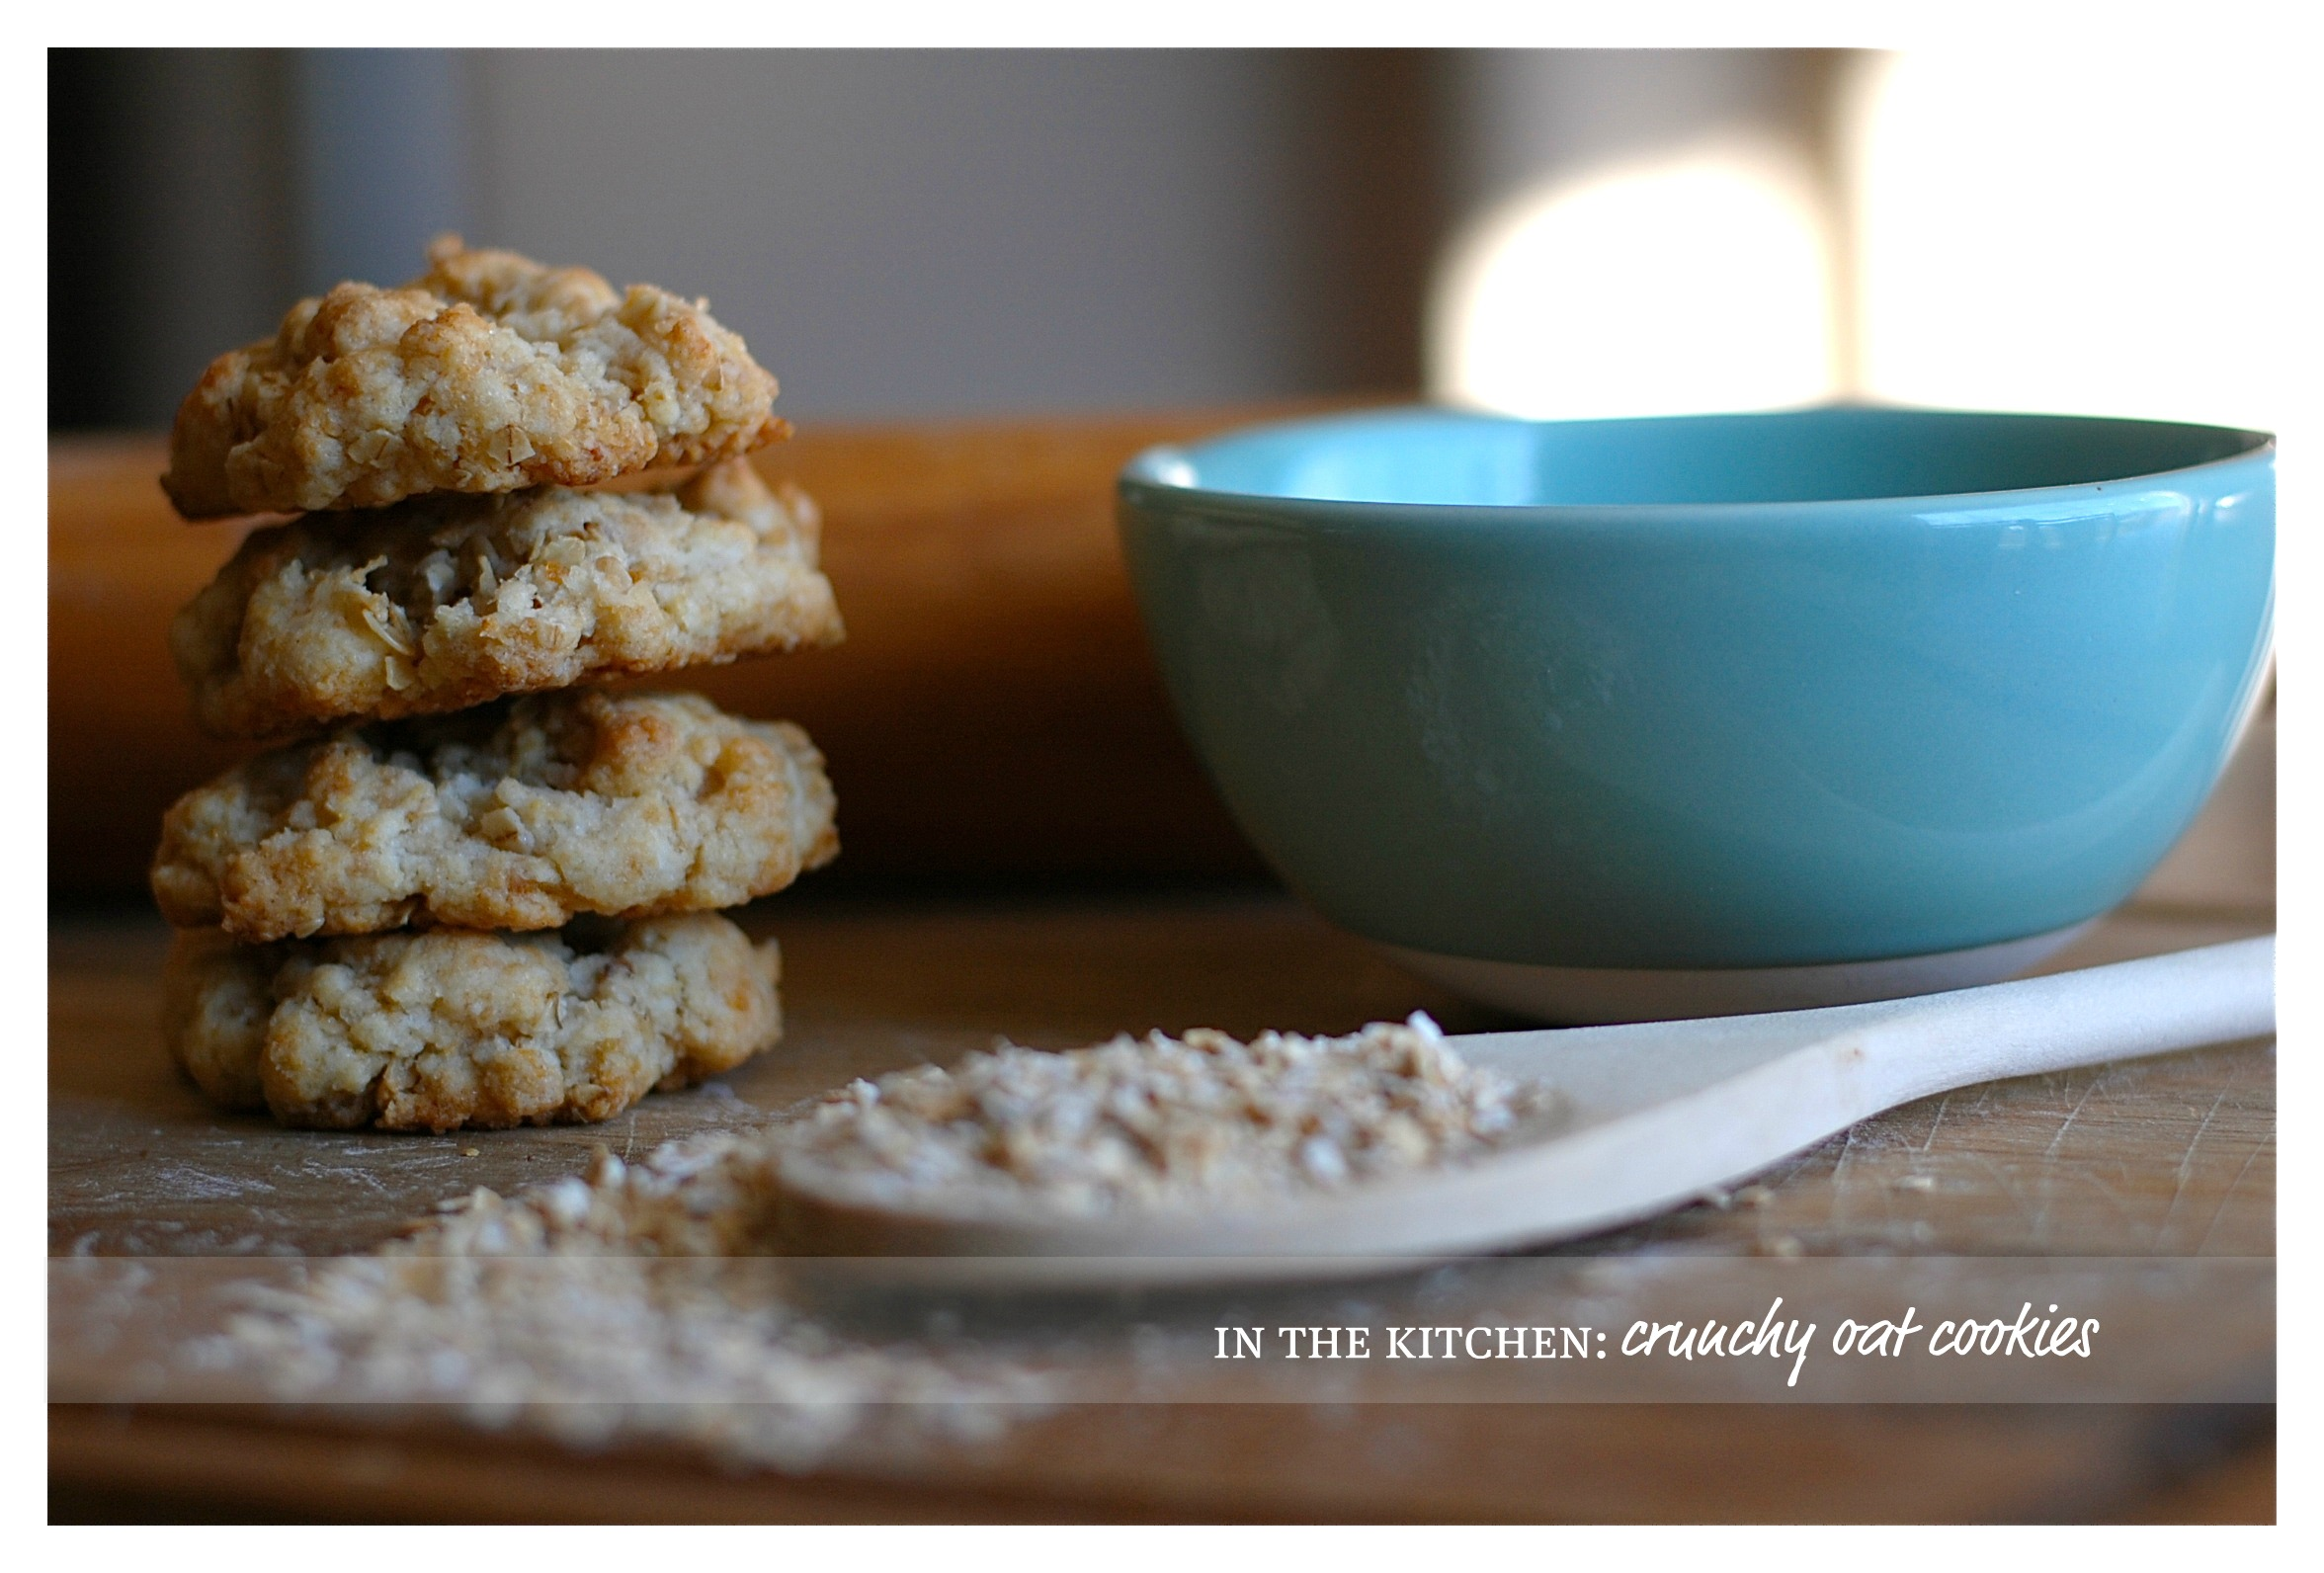 in the kitchen: crunchy oat cookies